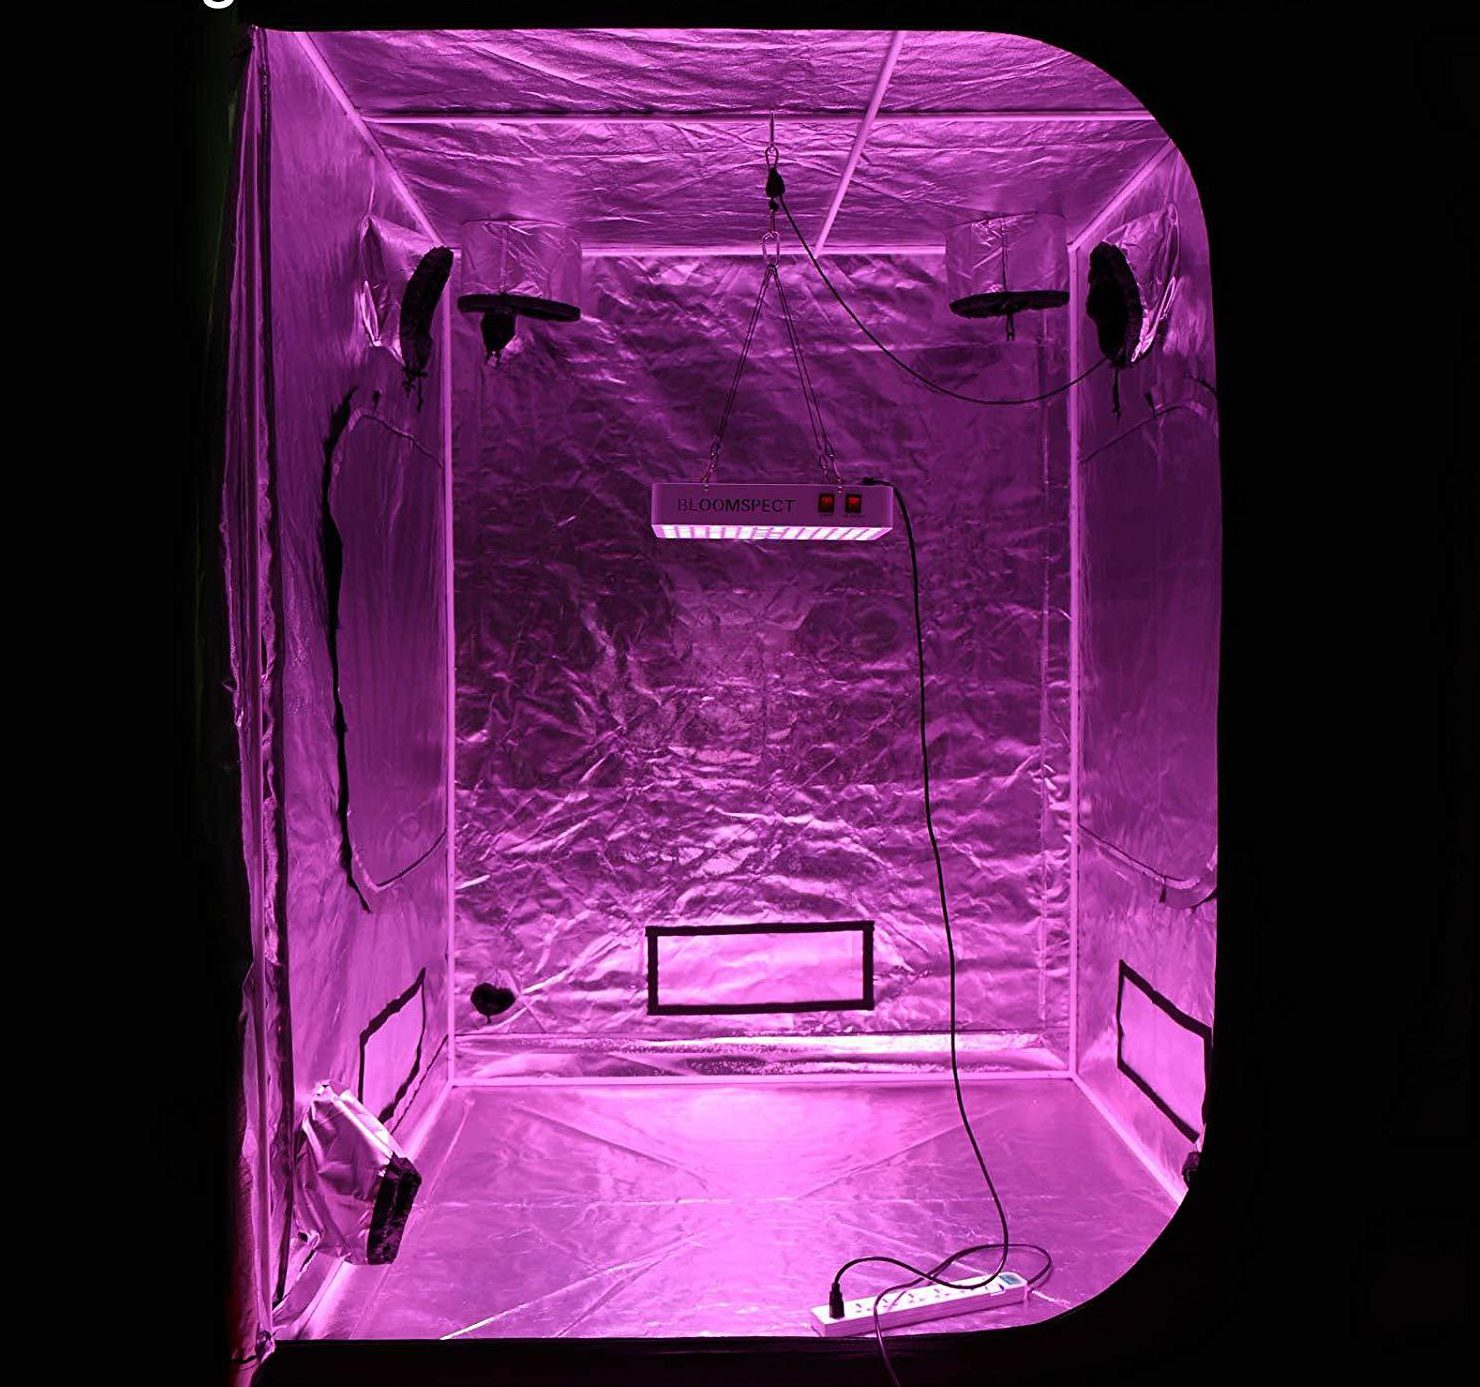 Inside Grow Tent - Bloomspect LED Review